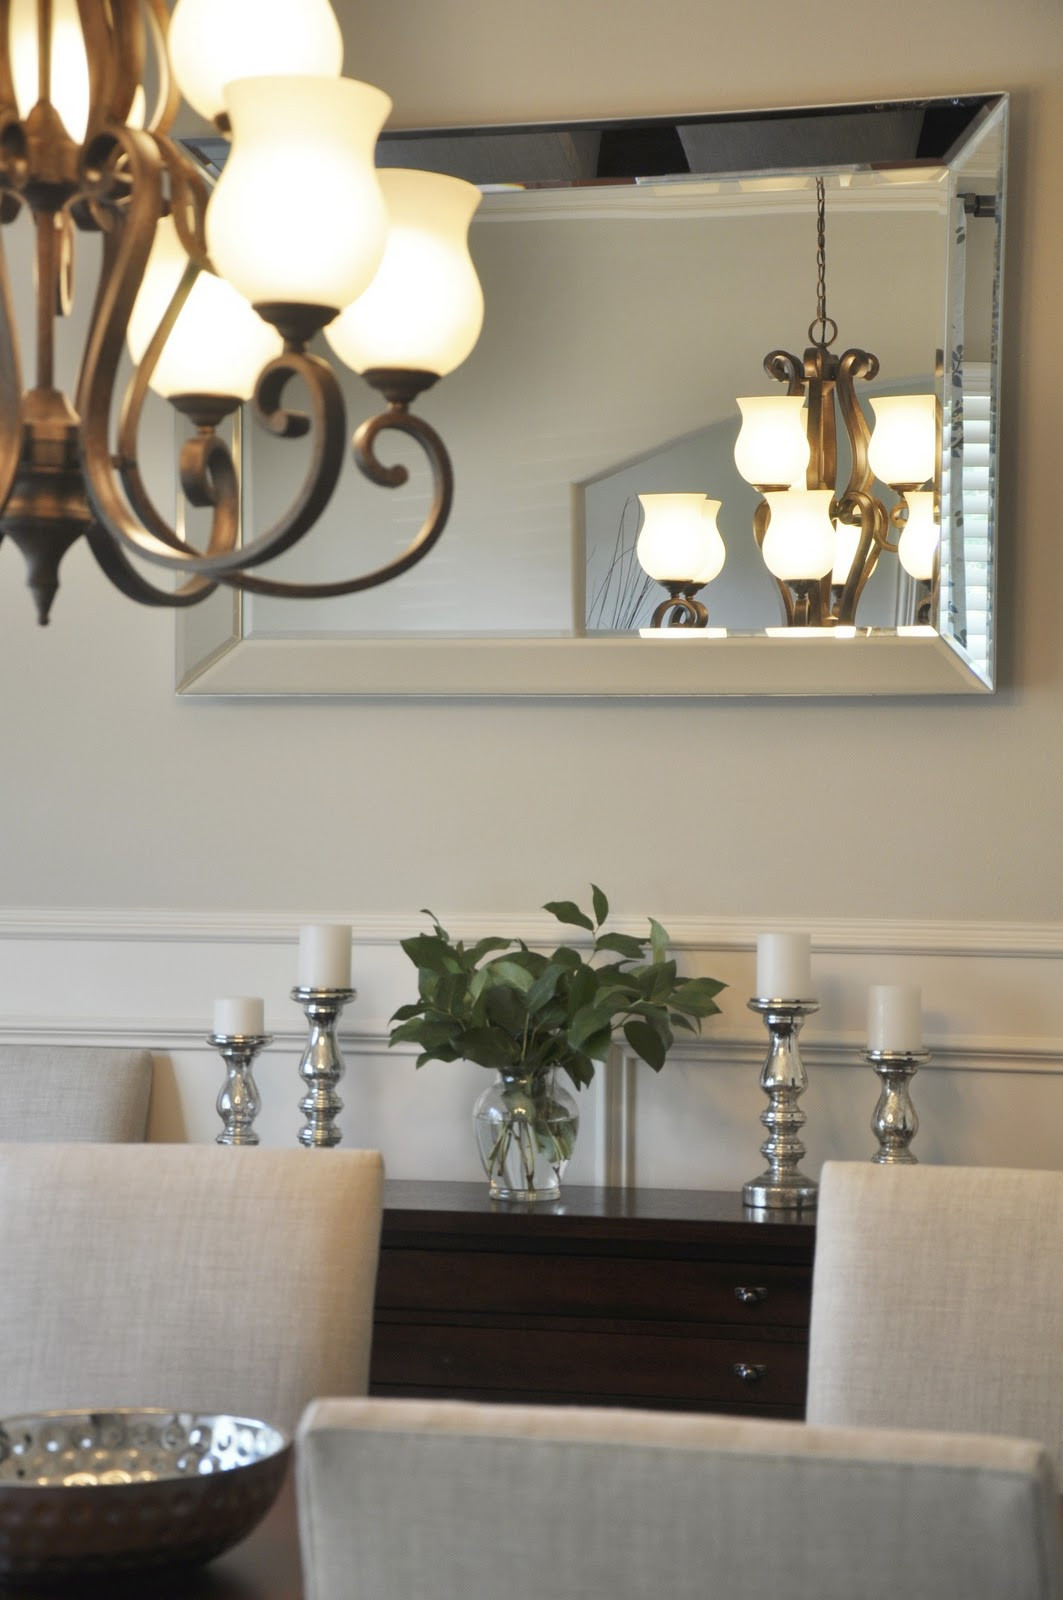 Best ideas about Dining Room Mirrors . Save or Pin Dining Room Progress Drapes & Mirror Now.